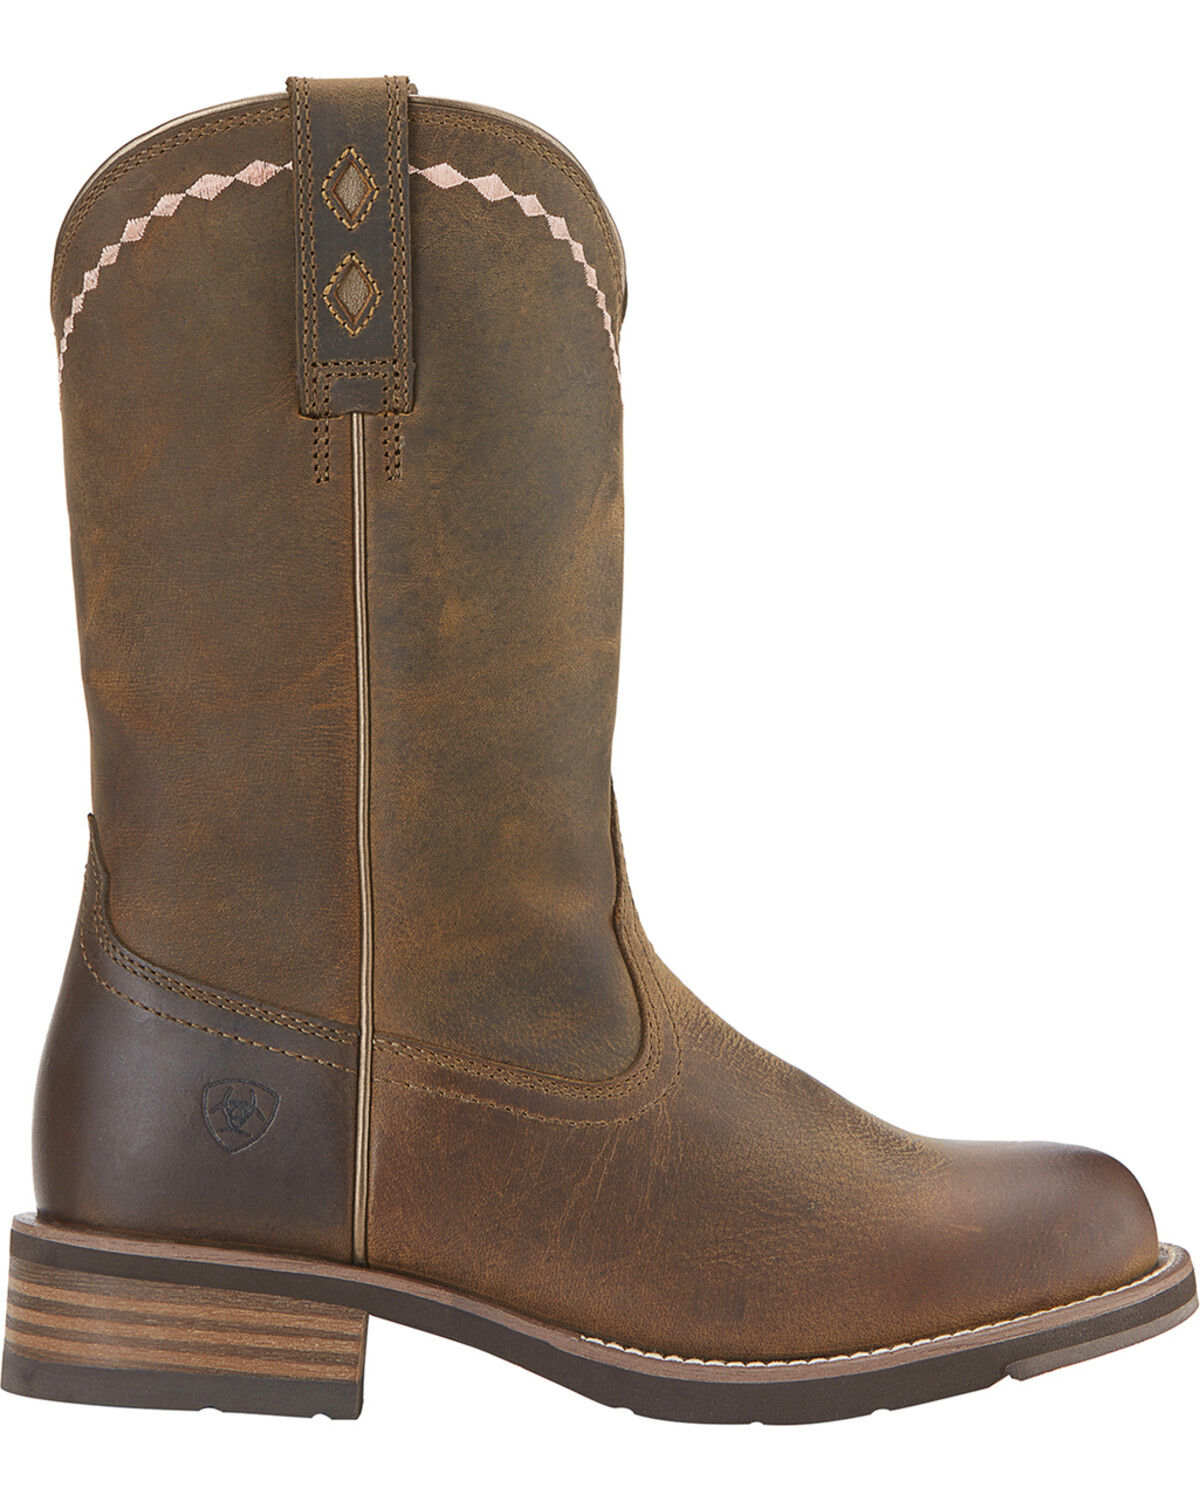 Unbridled Roper Boots - Round Toe